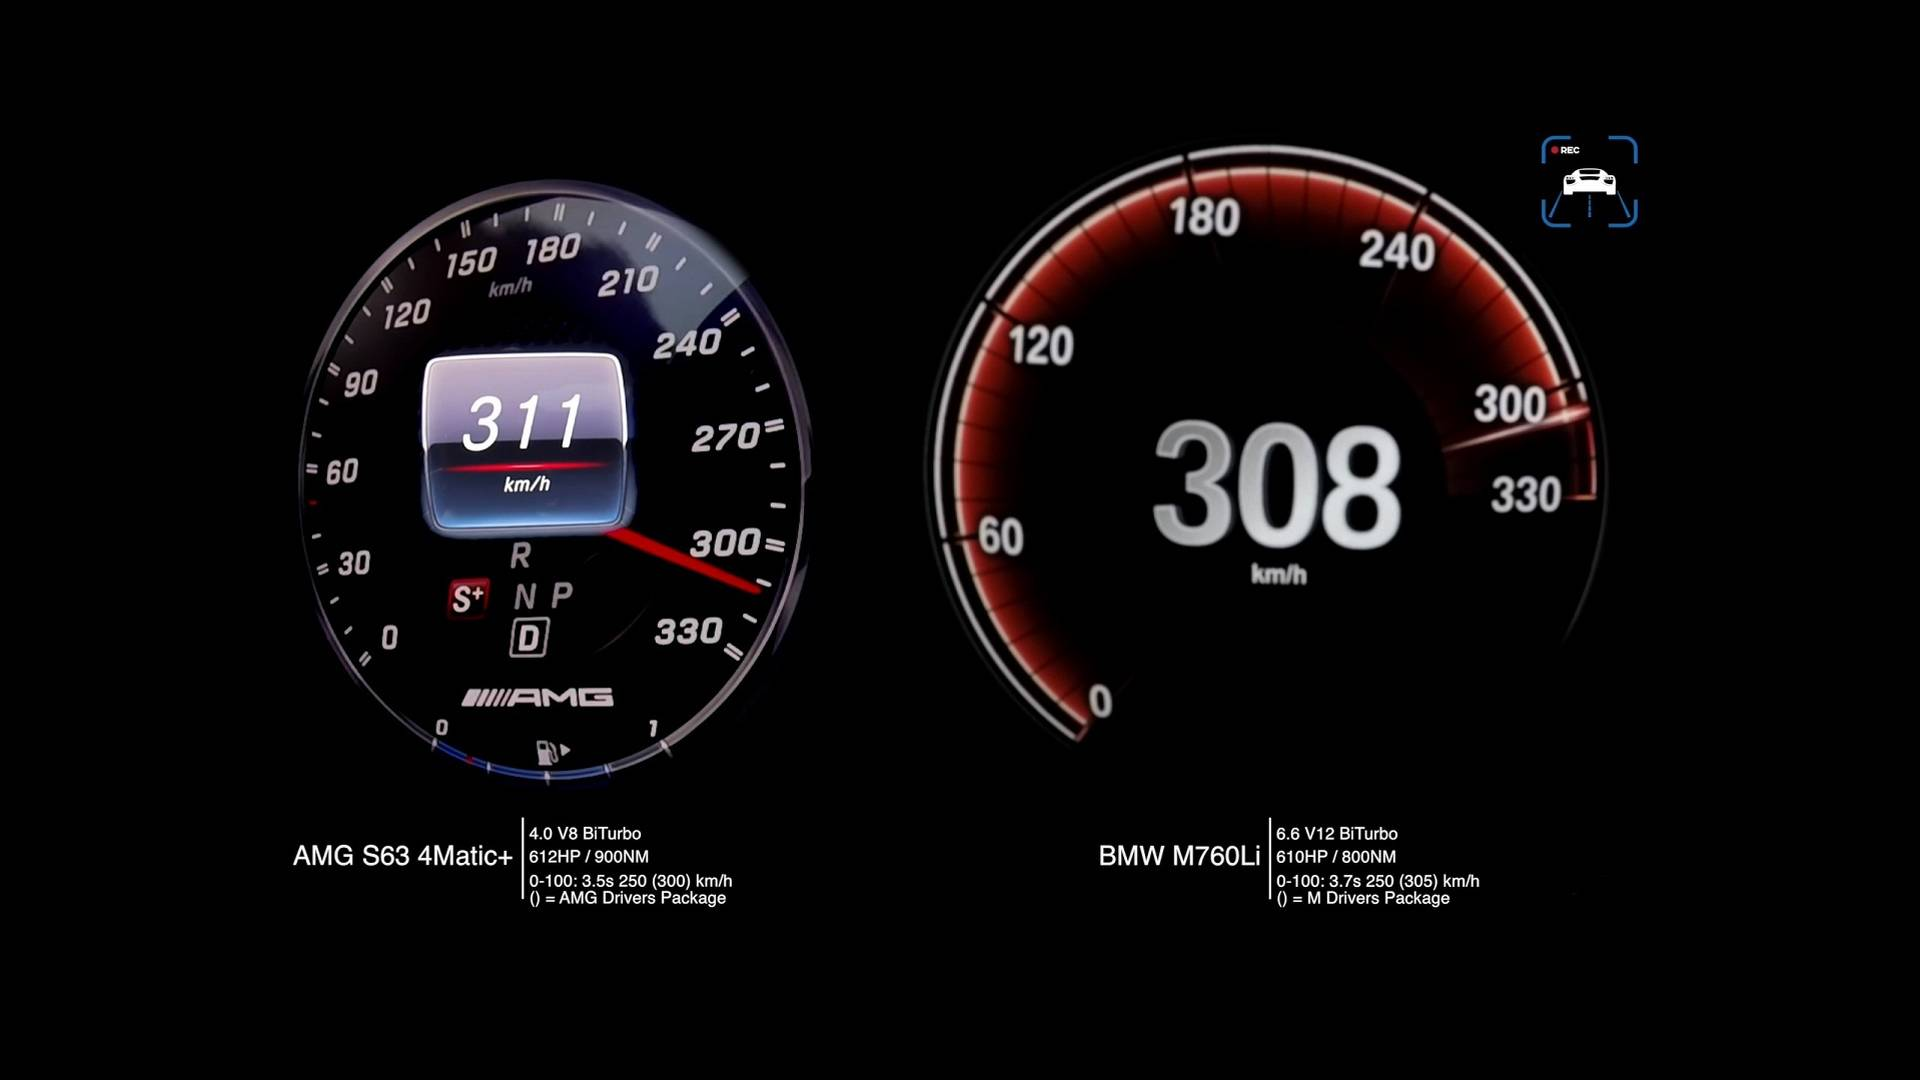 Mercedes Km Mercedes Amg S63 Vs Bmw M760li In Acceleration Top Speed Duels